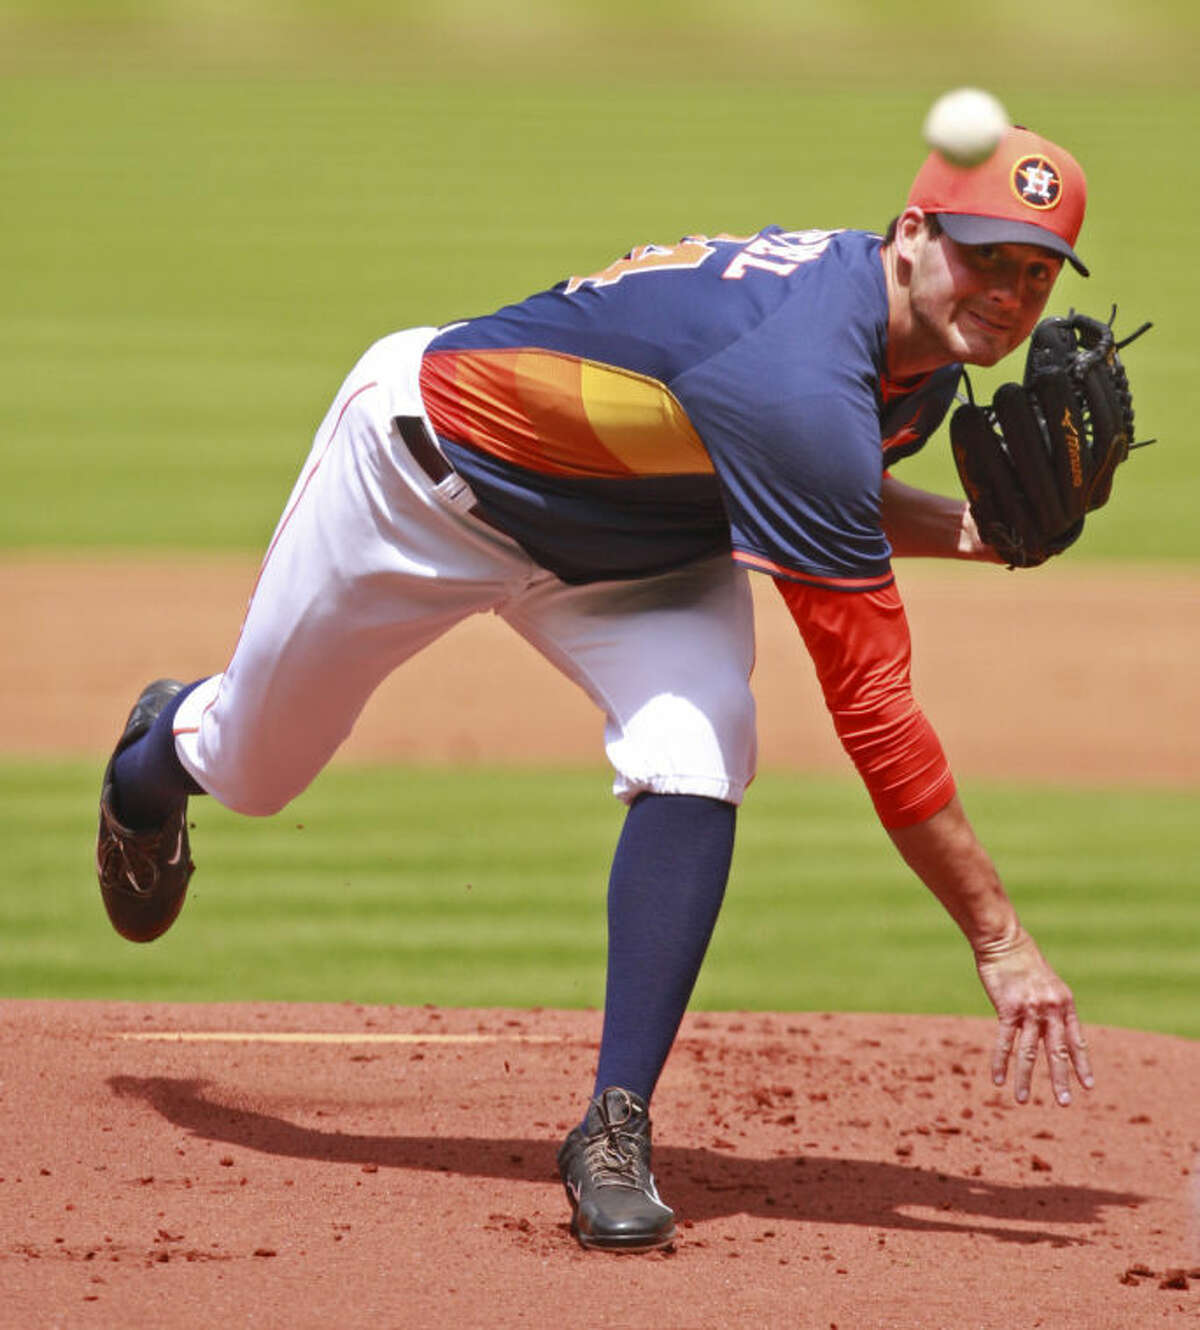 Houston Astros Mark Appel pitches against the Rojos del Aguila de Veracruz during an exhibition game at Minute Maid Park Sunday, March 30, 2014, in Houston. ( Melissa Phillip / Houston Chronicle )